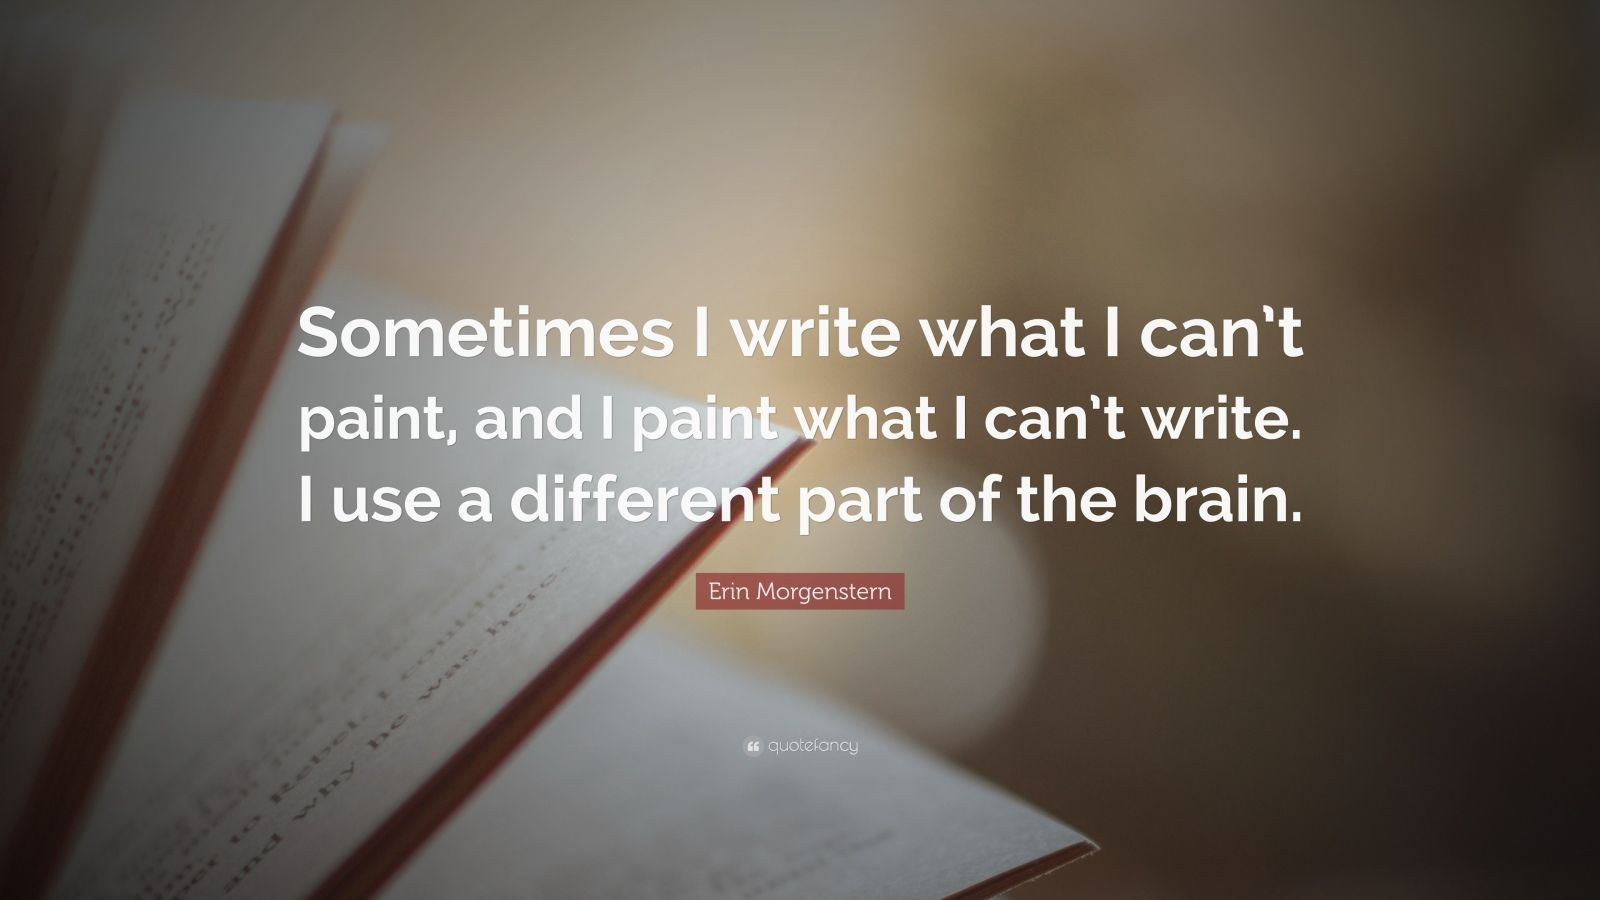 """Erin Morgenstern Quote: """"Sometimes I write what I can't paint, and I paint what I can't write. I use a different part of the brain."""""""